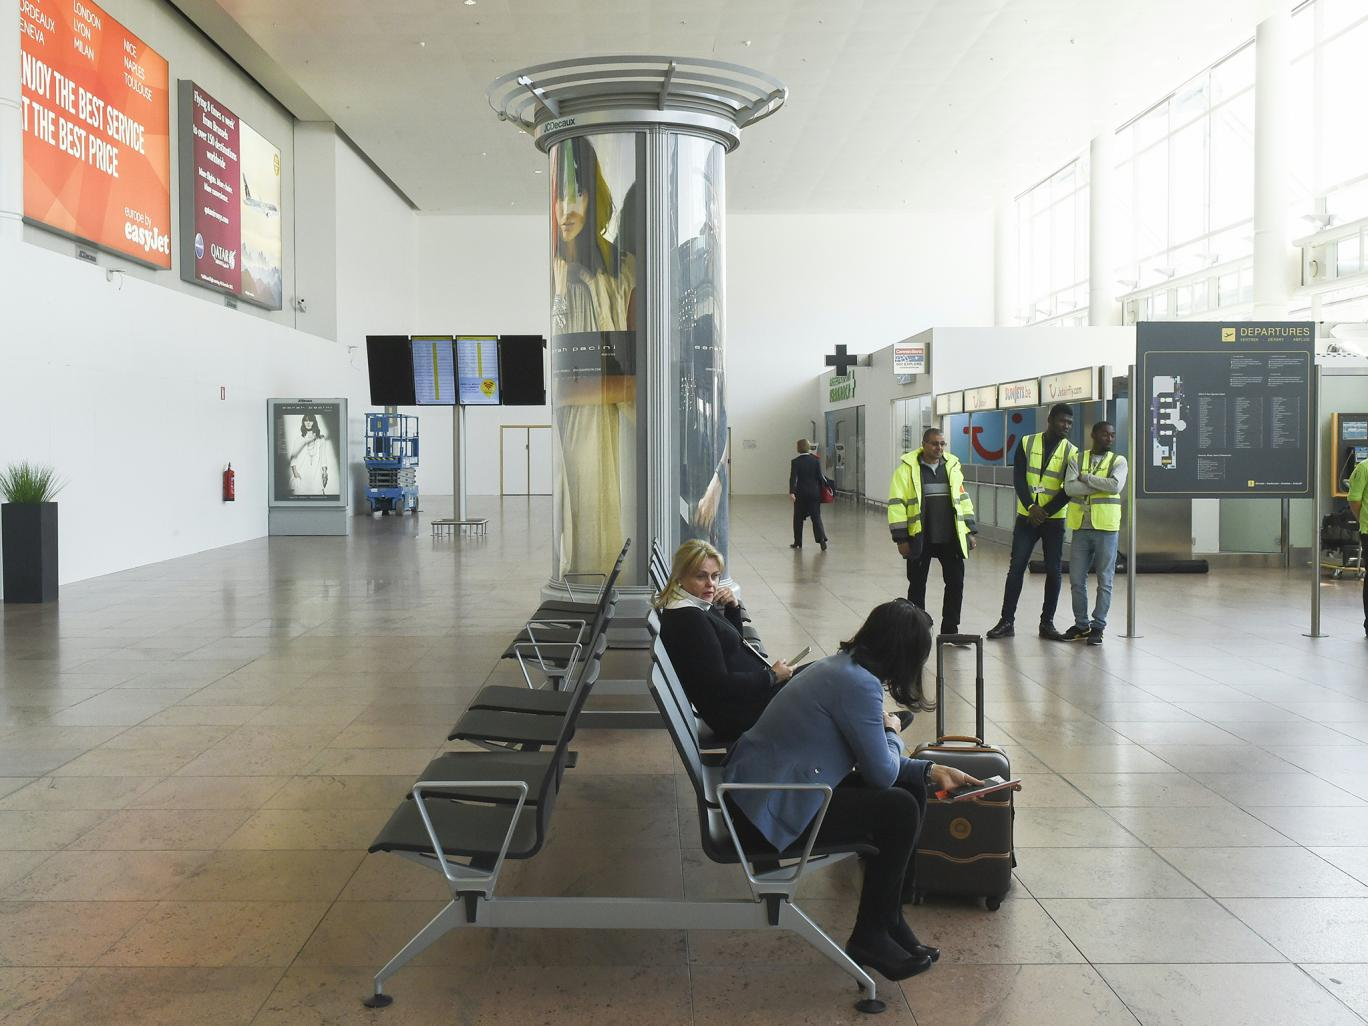 Bomb alerts have been reported on two passenger jets due to arrive at Brussels airport. (AFP)